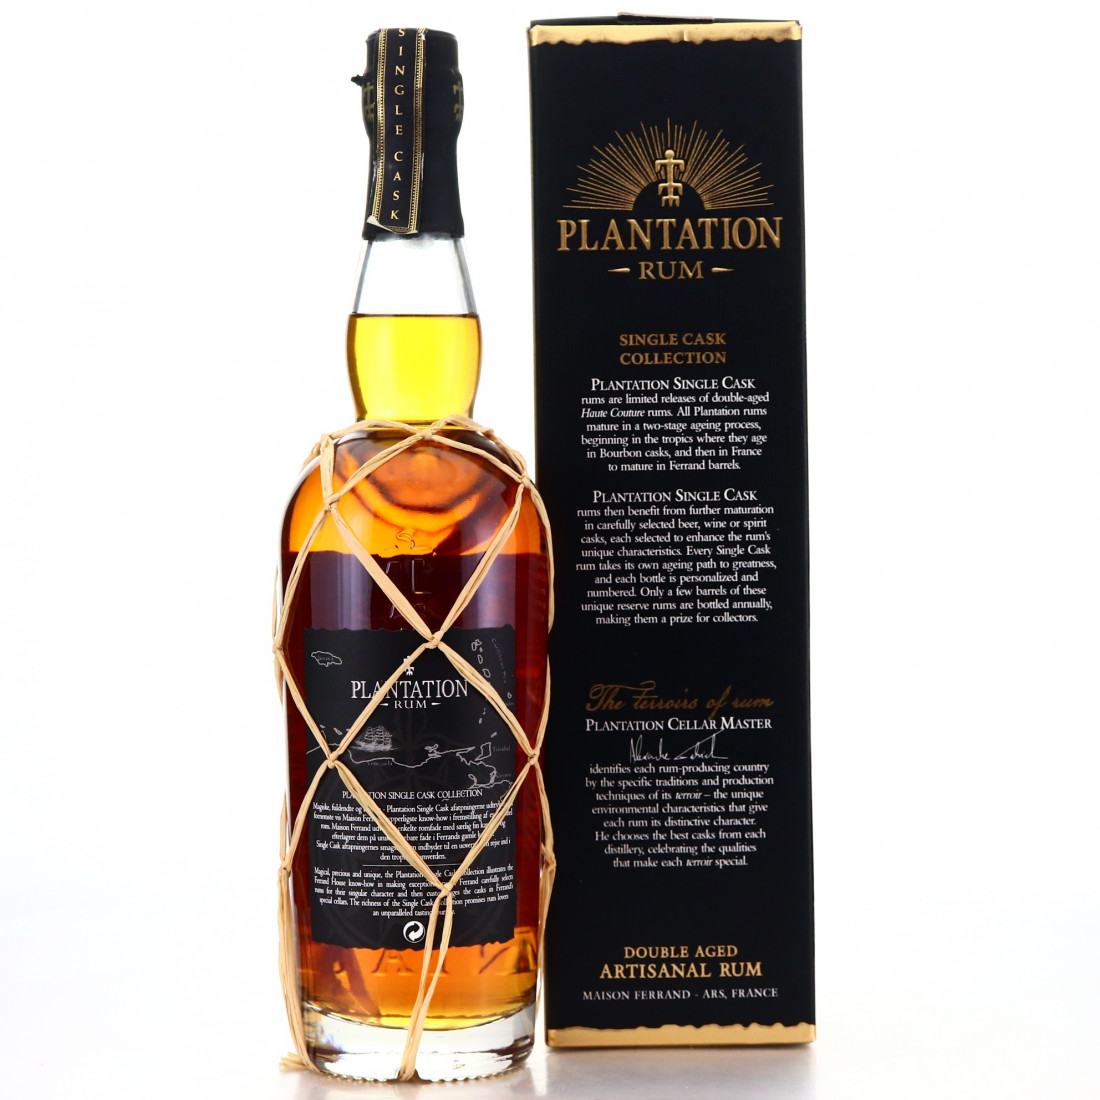 Cuba Rum 1998 Plantation Single Cask #2 / Denmark